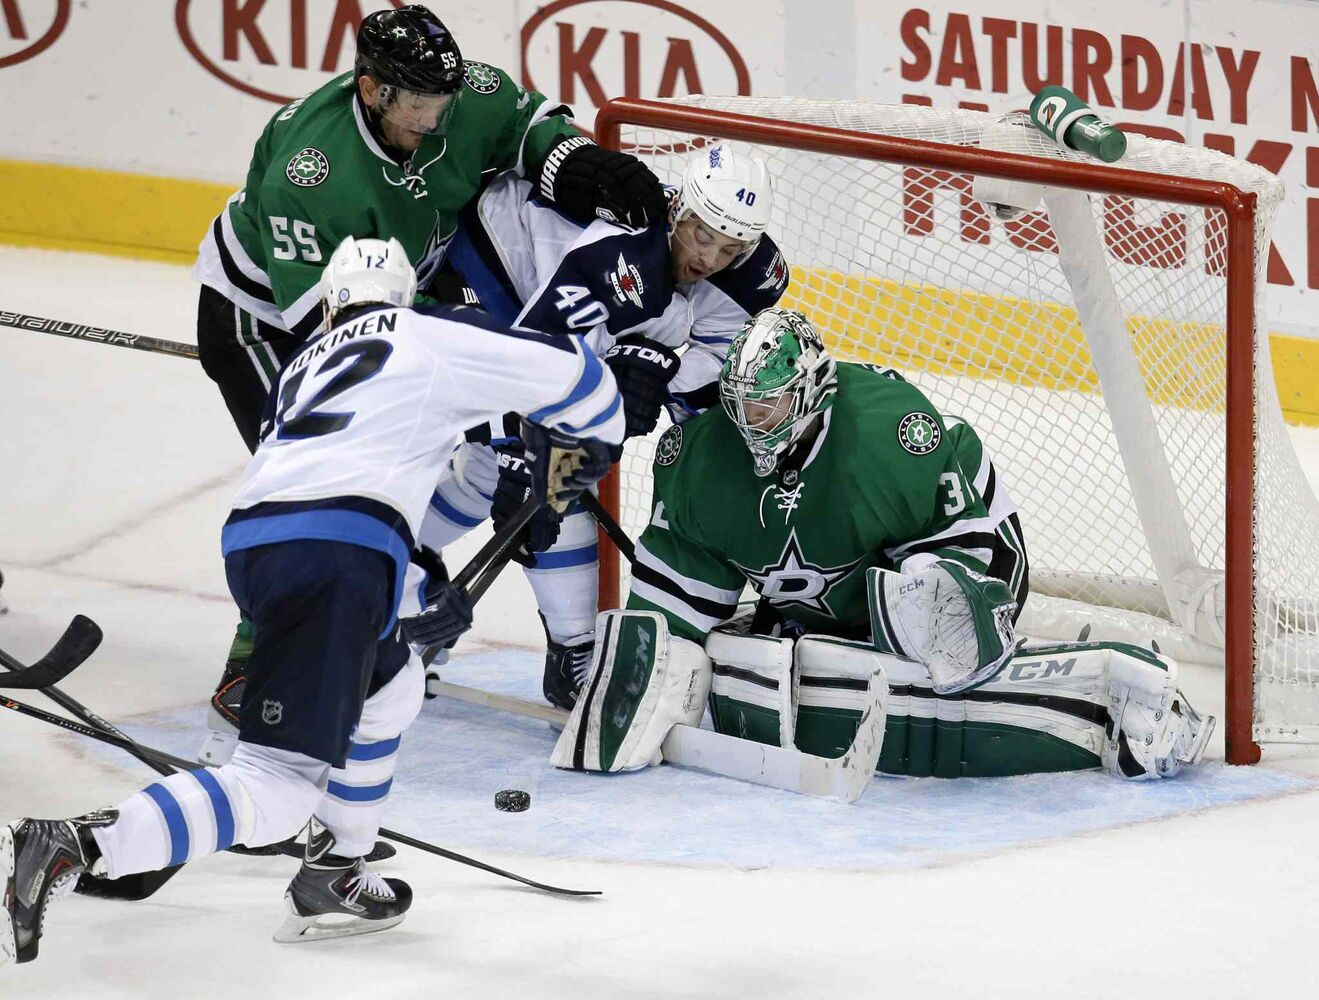 Olli Jokinen attempts a shot on a rebound against Dallas Stars goalie Kari Lehtonen as defenceman Sergei Gonchar grapples with Devin Setoguchi in front of the net during overtime. (Tony Gutierrez / The Associated Press)